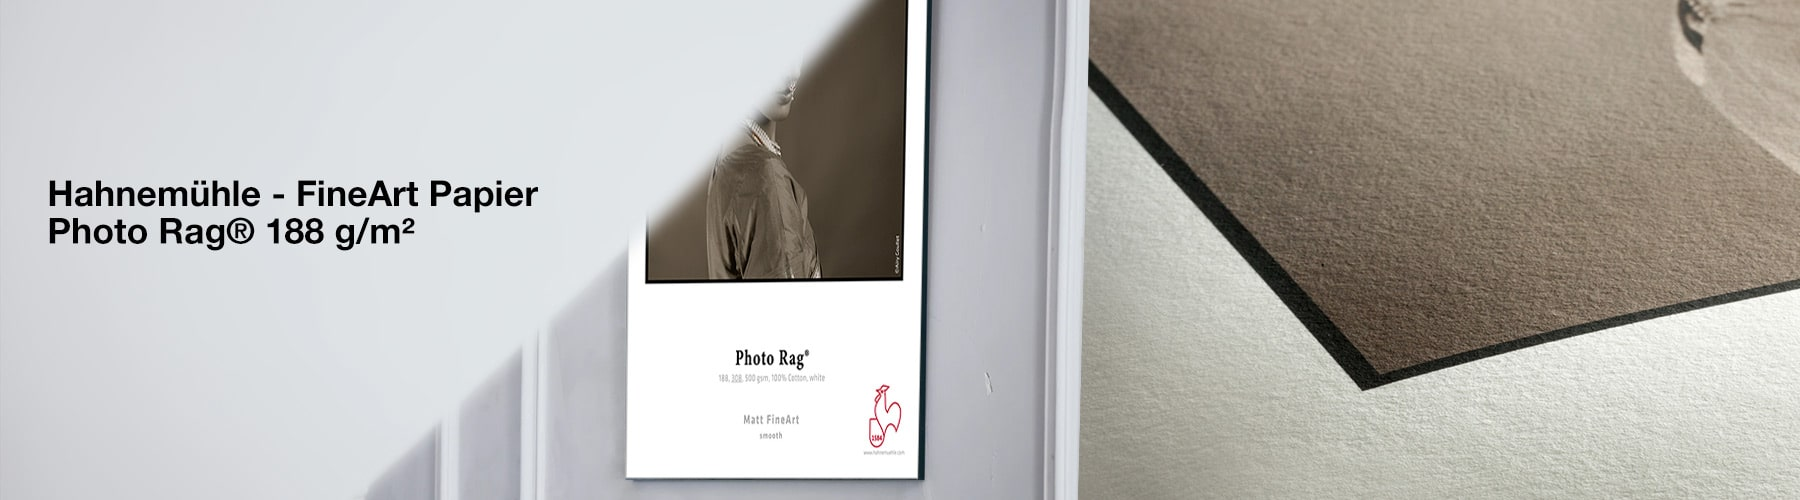 Hahnemühle Fine Art Papier - Photo Rag® 308 g/m²